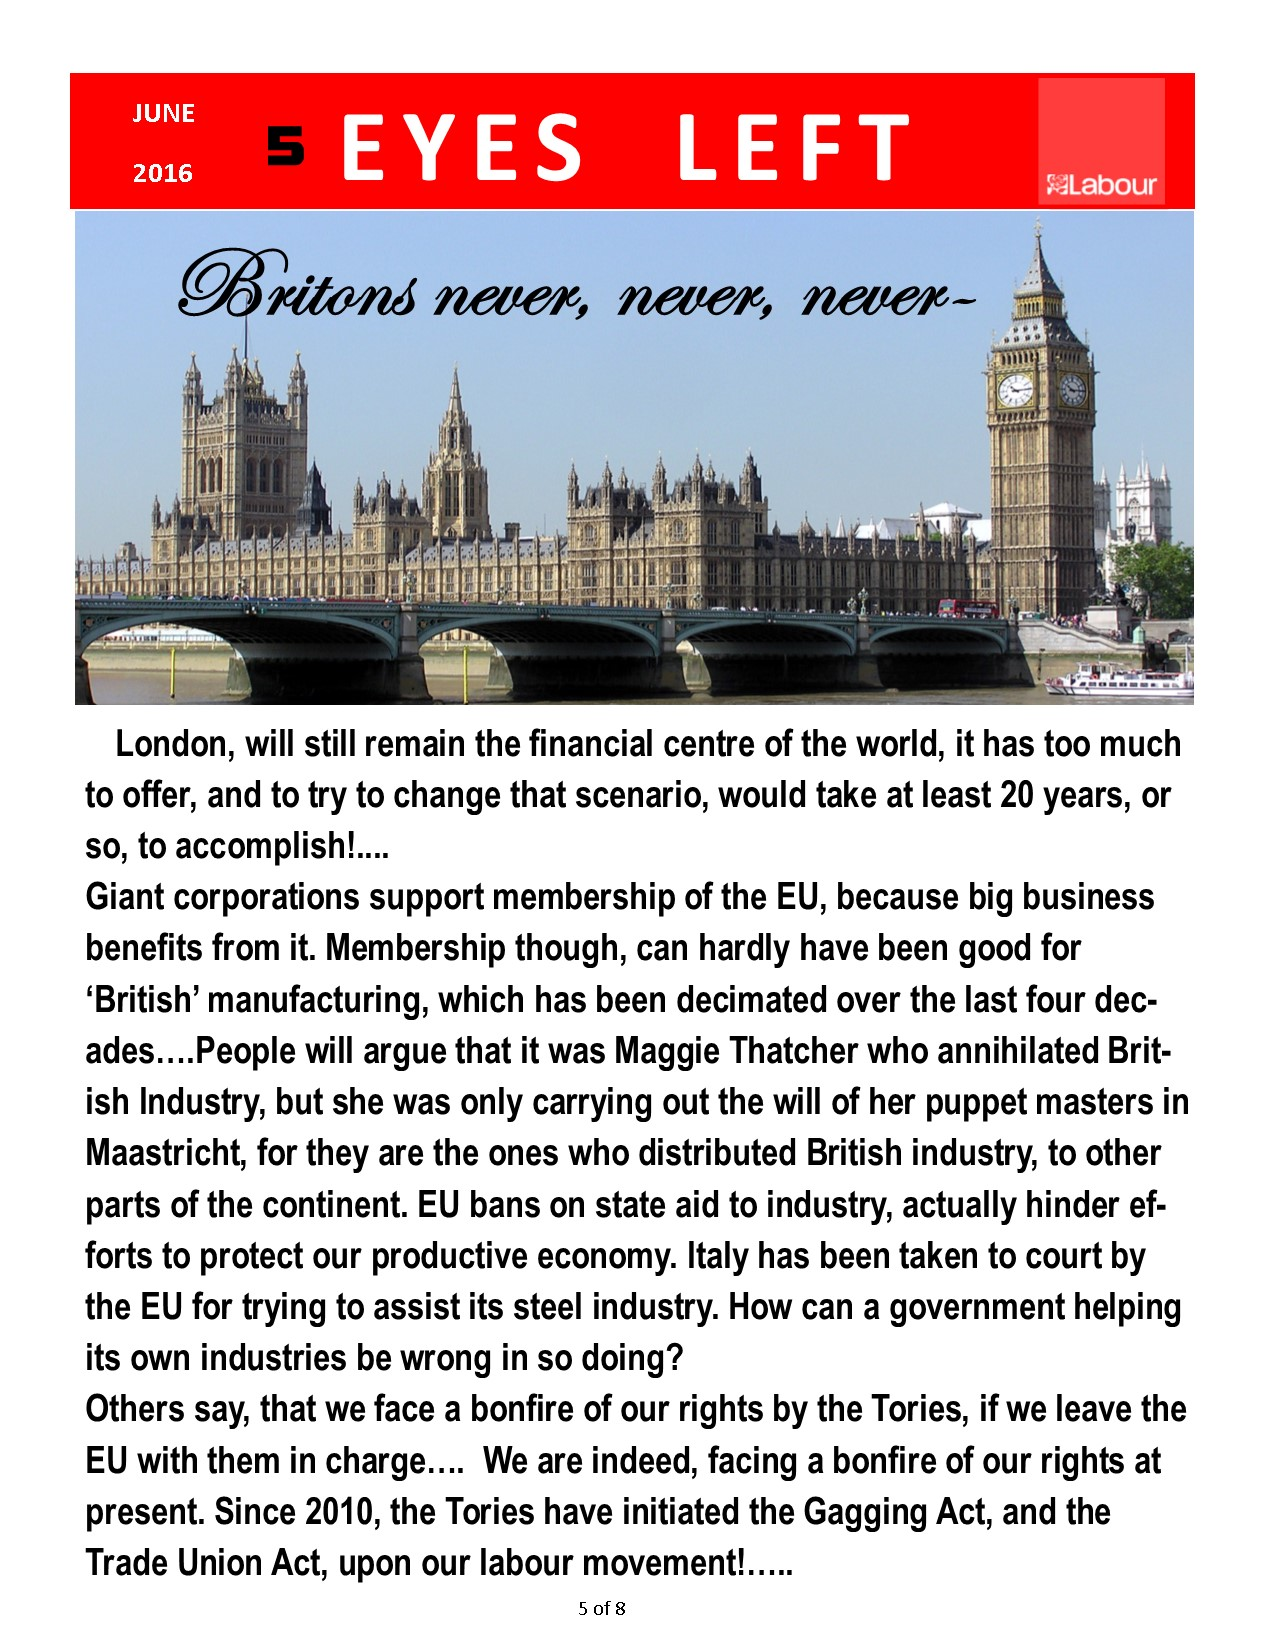 Publication 1   Britain..never,never, never... 5 of 8